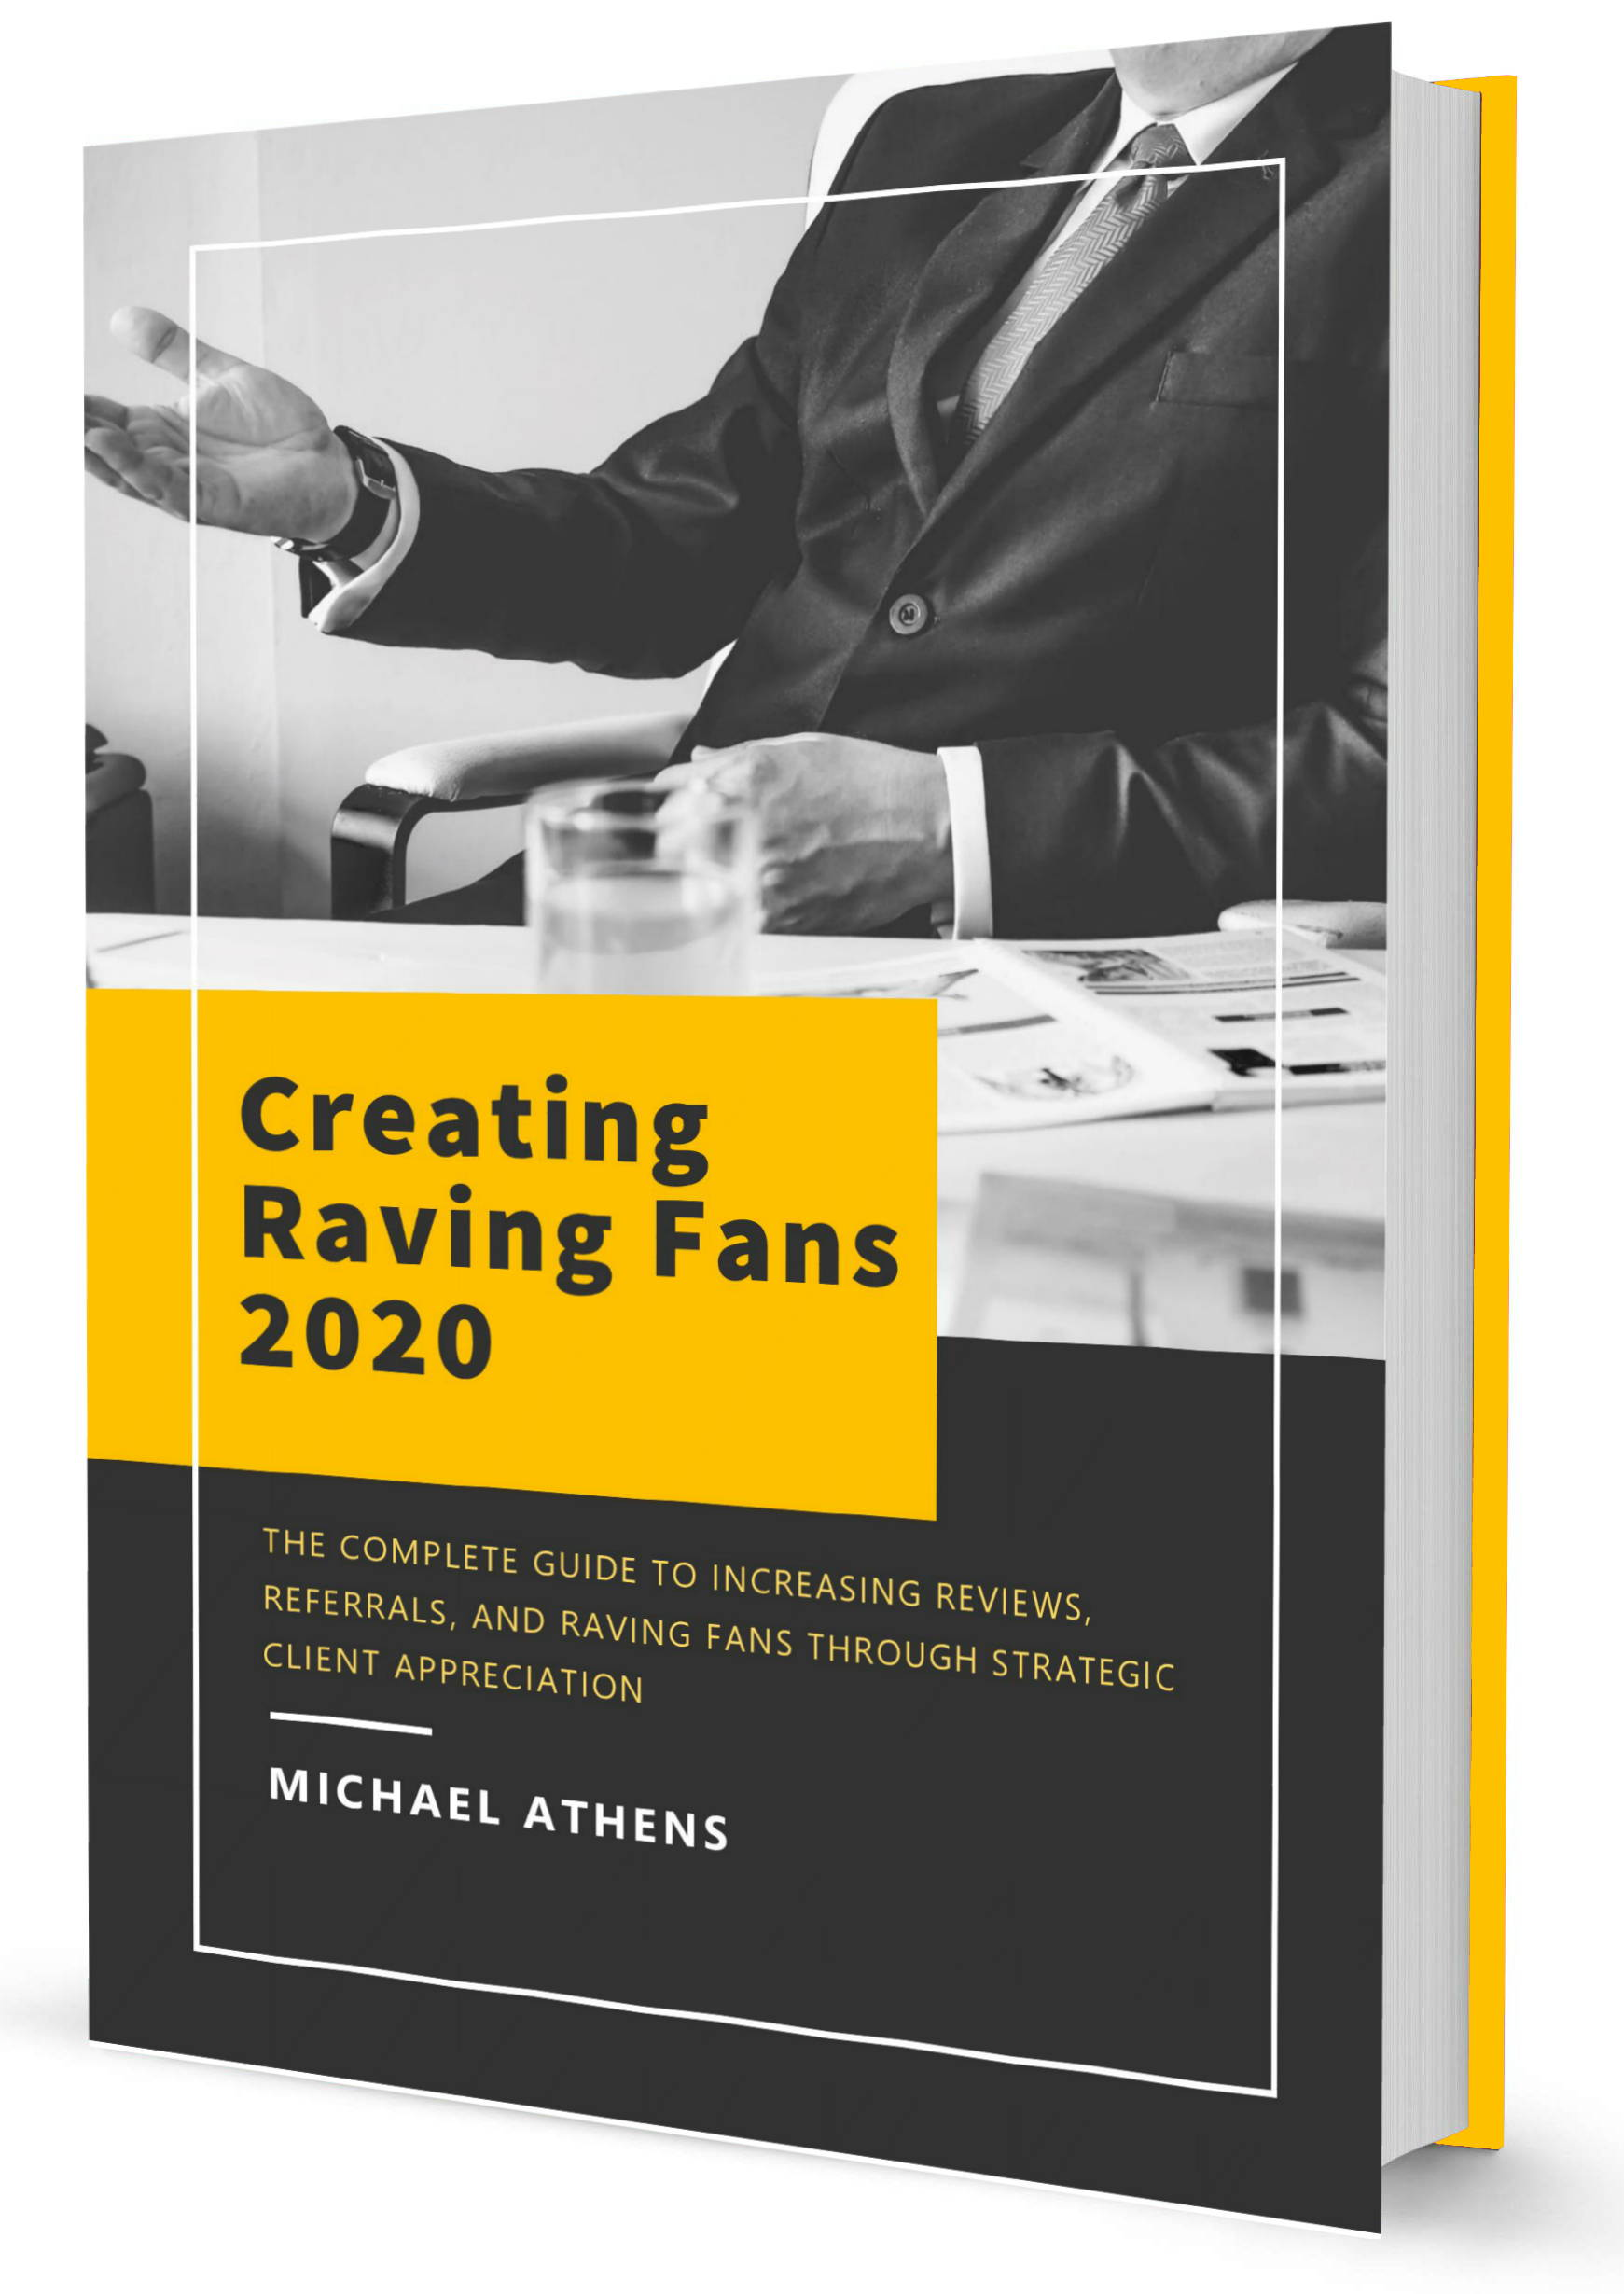 Creating Raving fans guide, the complete guide to increasing reviews referrals and raving fans through strategic appreciation